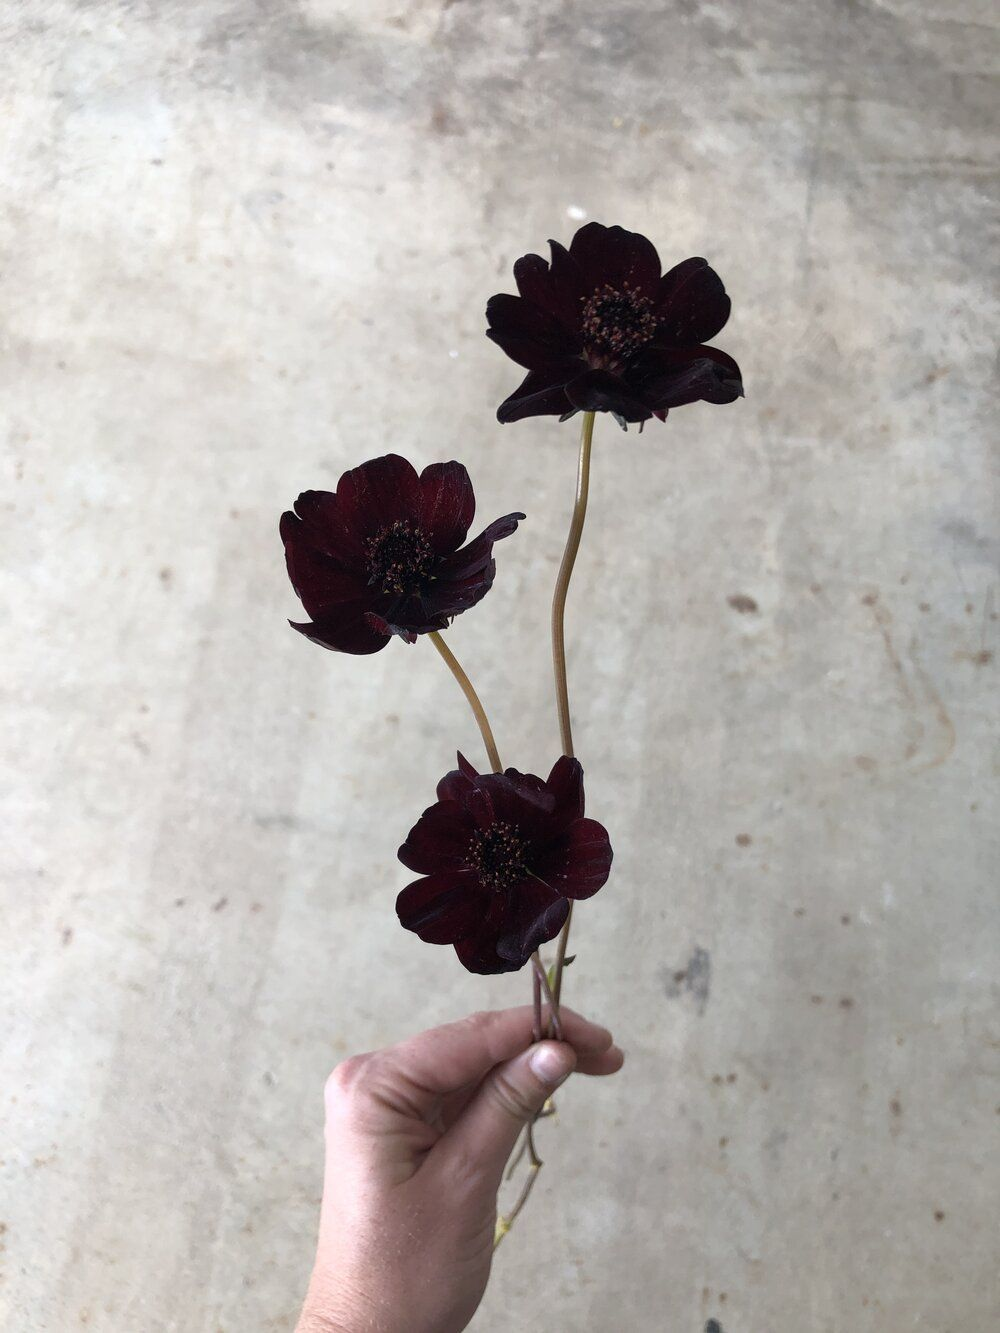 A Day In The Life Your Florist Evergreen Flower Co In 2020 Chocolate Cosmos Evergreen Flowers Chocolate Cosmos Flower